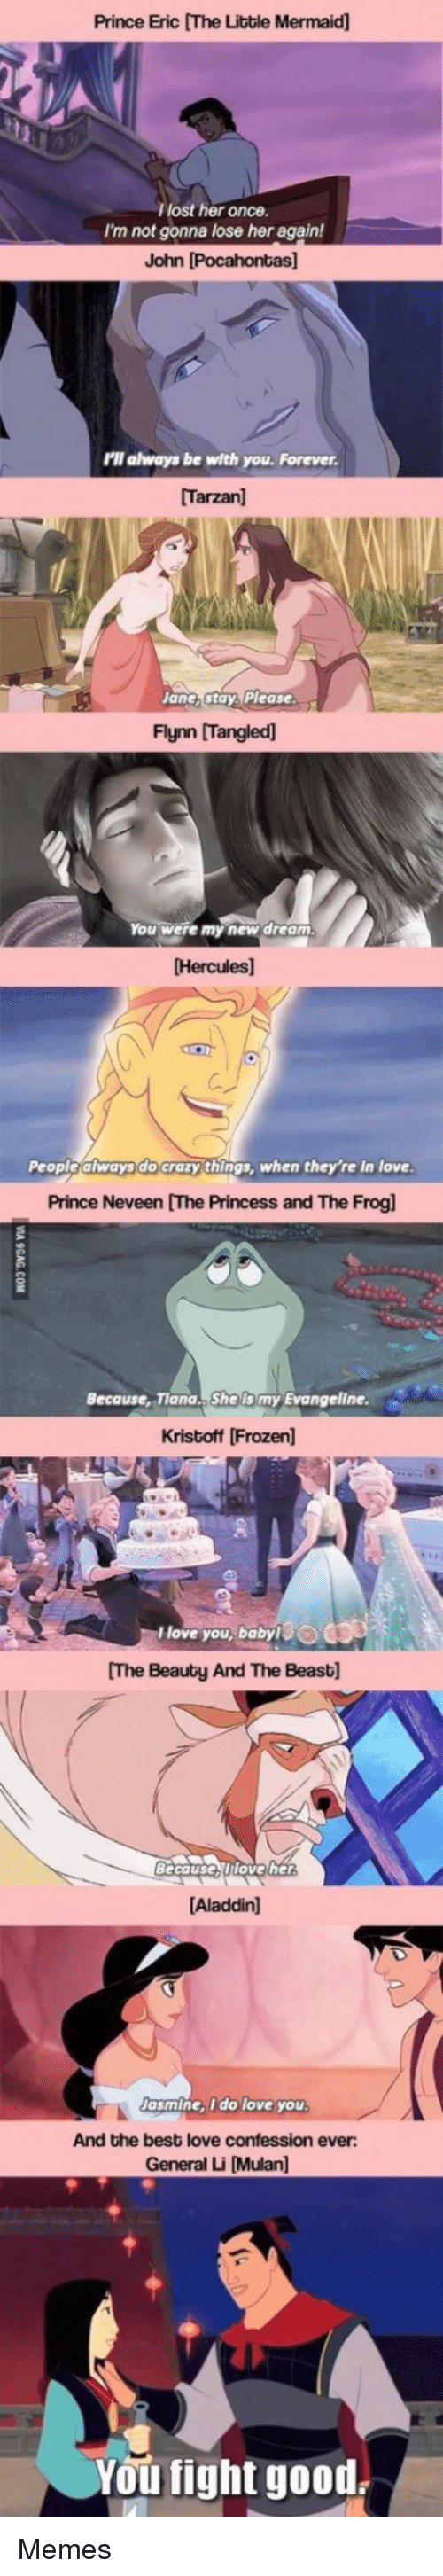 Aladdin, Crazy, and Frozen: Prince Eric [The Litble Mermaid]  lost her once.  I'm not gonna lose her again!  John [Pocahontas]  'll always be with you. Forever  [Tarzan]  Jane,stay, Please  Flynn [Tangled)  ou were my new dream  Hercules]  People always do crazy things, when they're in love  Prince Neveen [The Princess and The Frogl  Because, Tiana.. She lis my Evangeline  Kristoff [Frozen  love you, babyO  The Beauty And The Beast]  Becauserttoveher  Aladdin]  asmine, i do love you  And the best love confession ever:  General Li [Mulan]  You fight good Memes